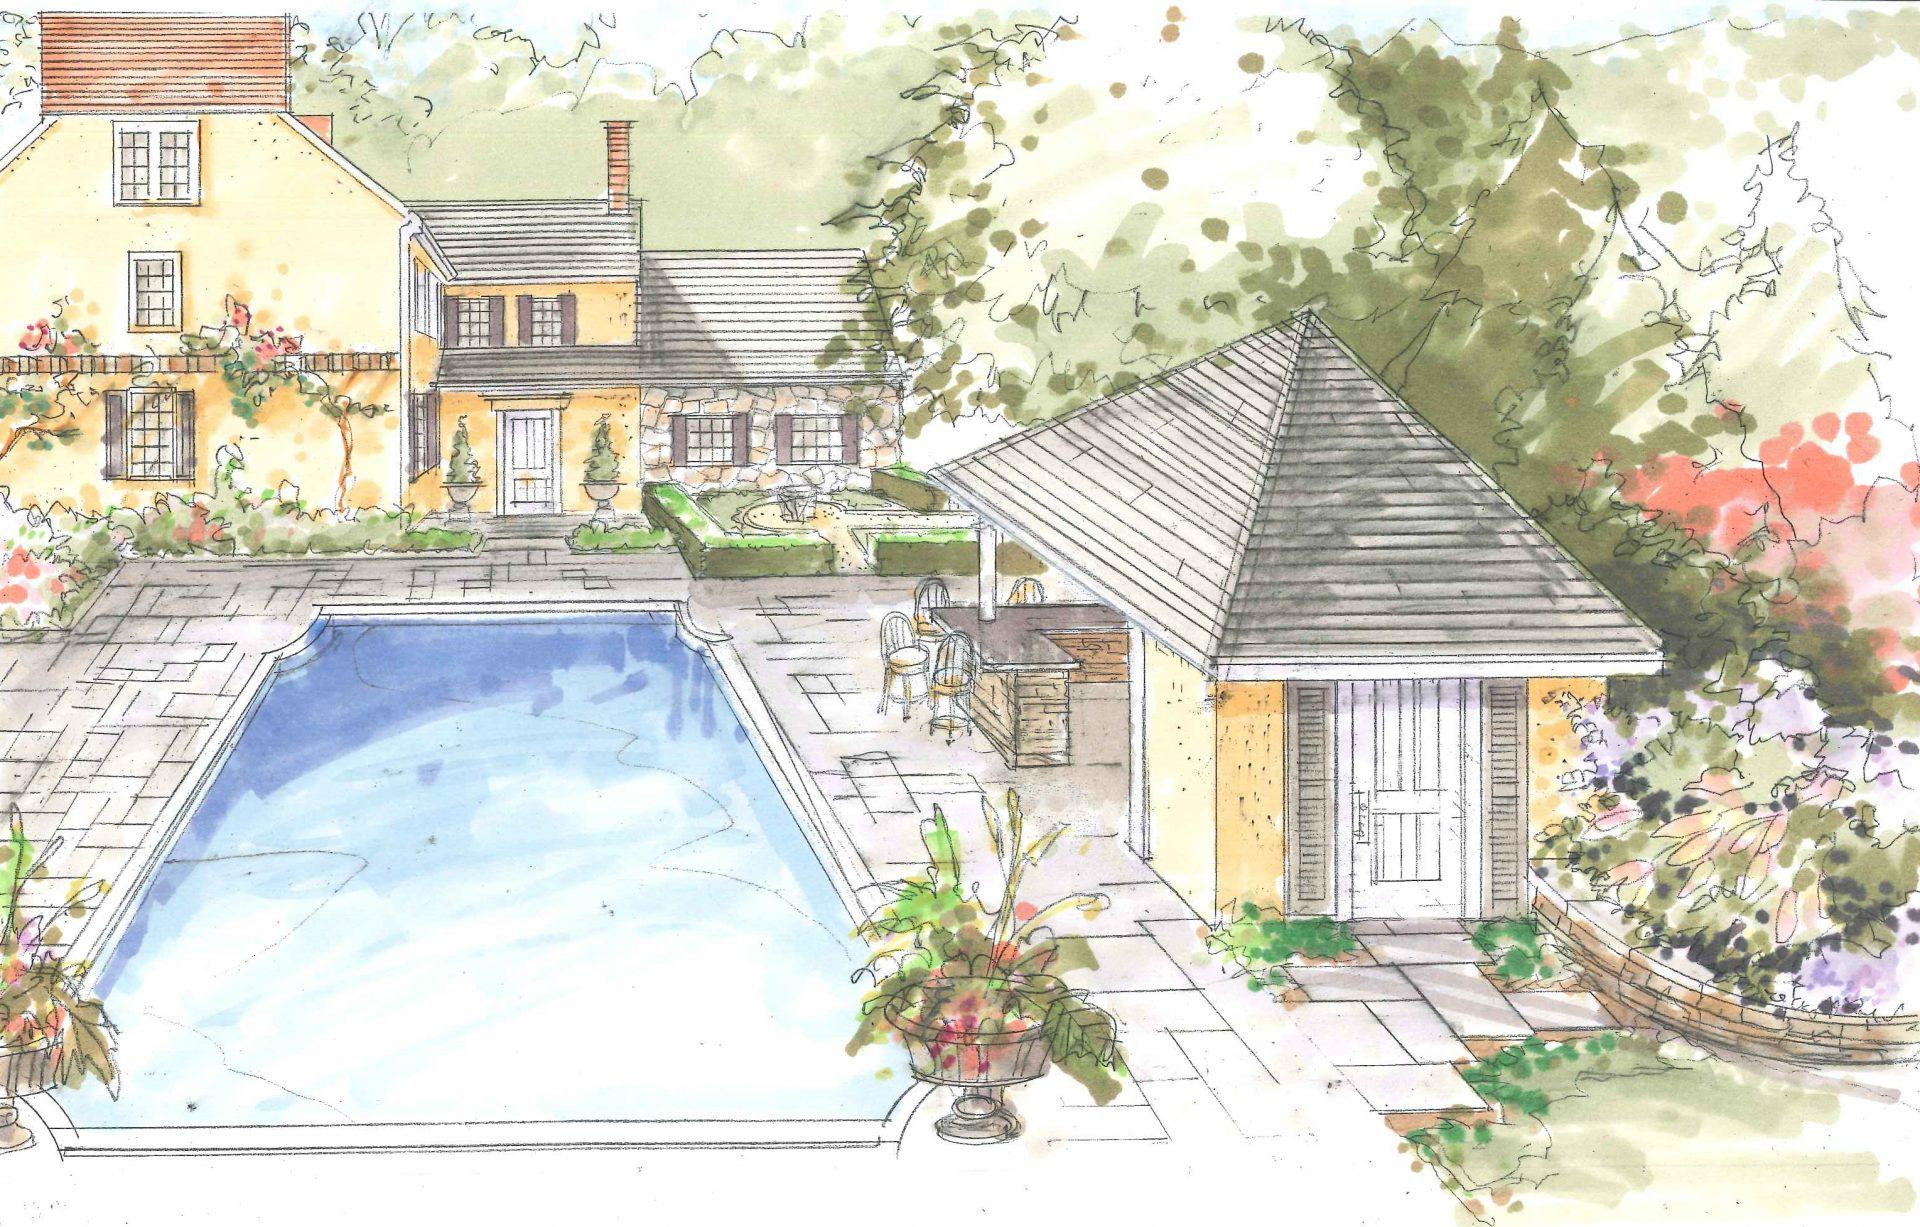 pool-concept-design-poolhouse-drawing-greenville-pa